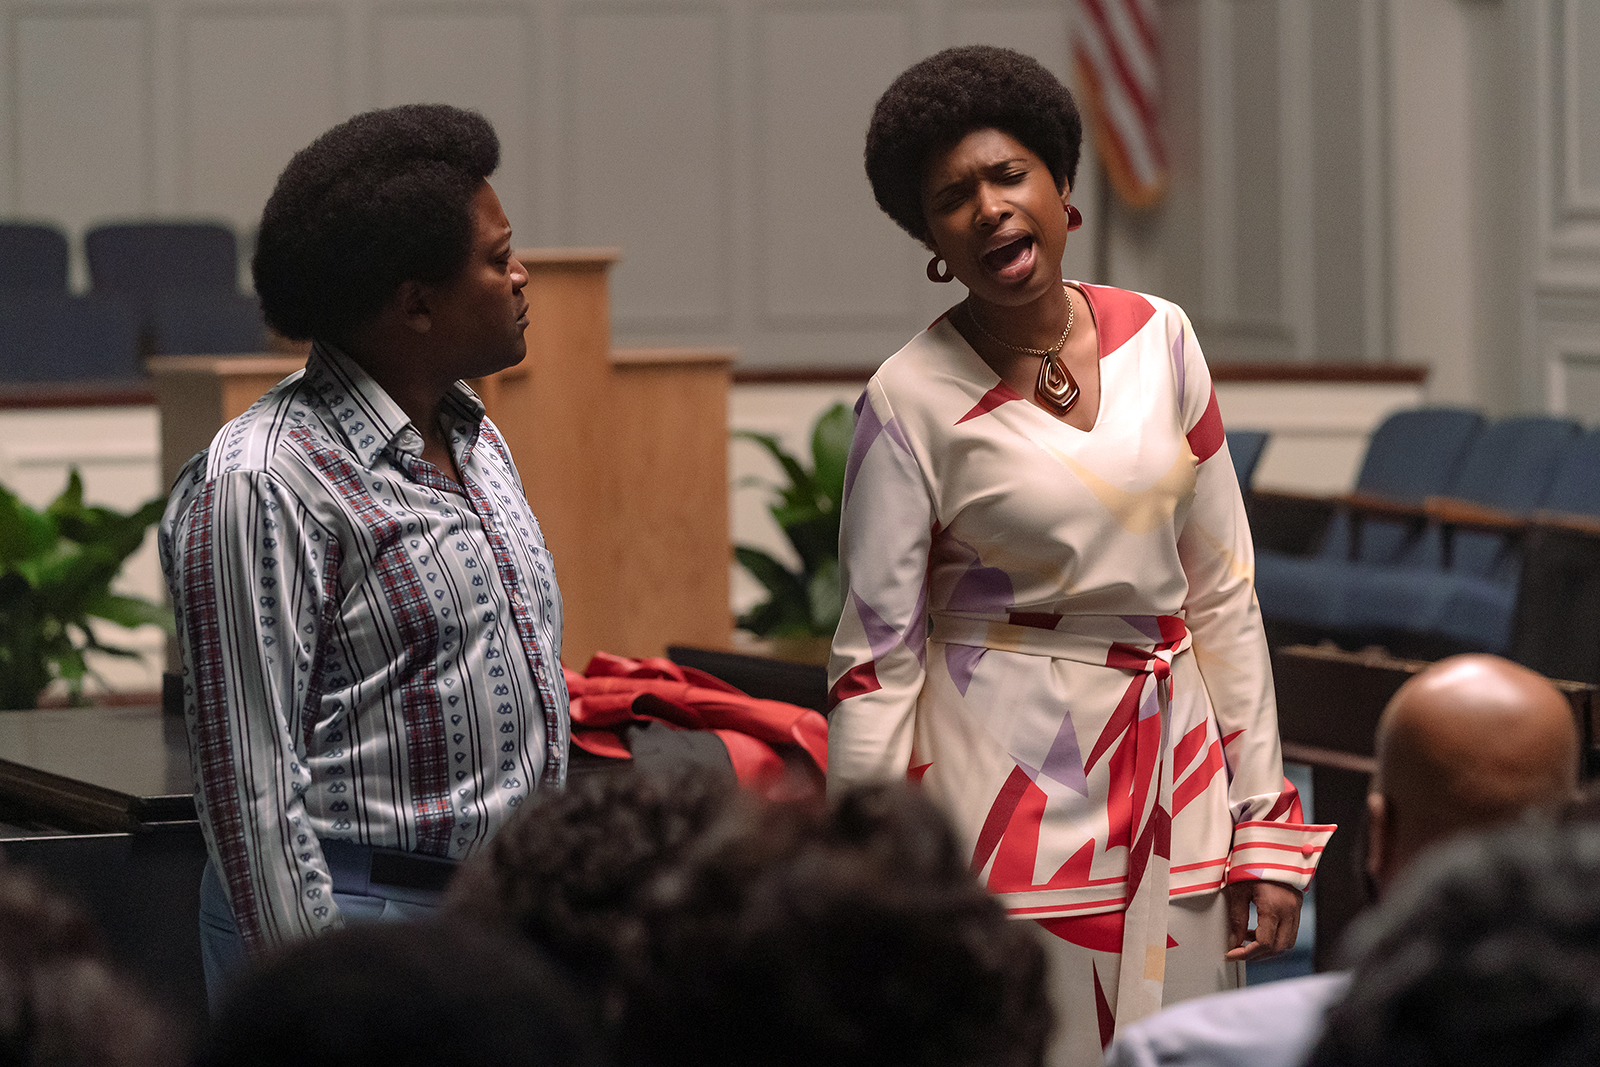 """Tituss Burgess, left, stars as the Rev. Dr. James Cleveland and Jennifer Hudson as Aretha Franklin in a scene from the film """"Respect."""" Photo by Quantrell D. Colbert/© 2021 Metro-Goldwyn-Mayer Pictures Inc. All Rights Reserved"""